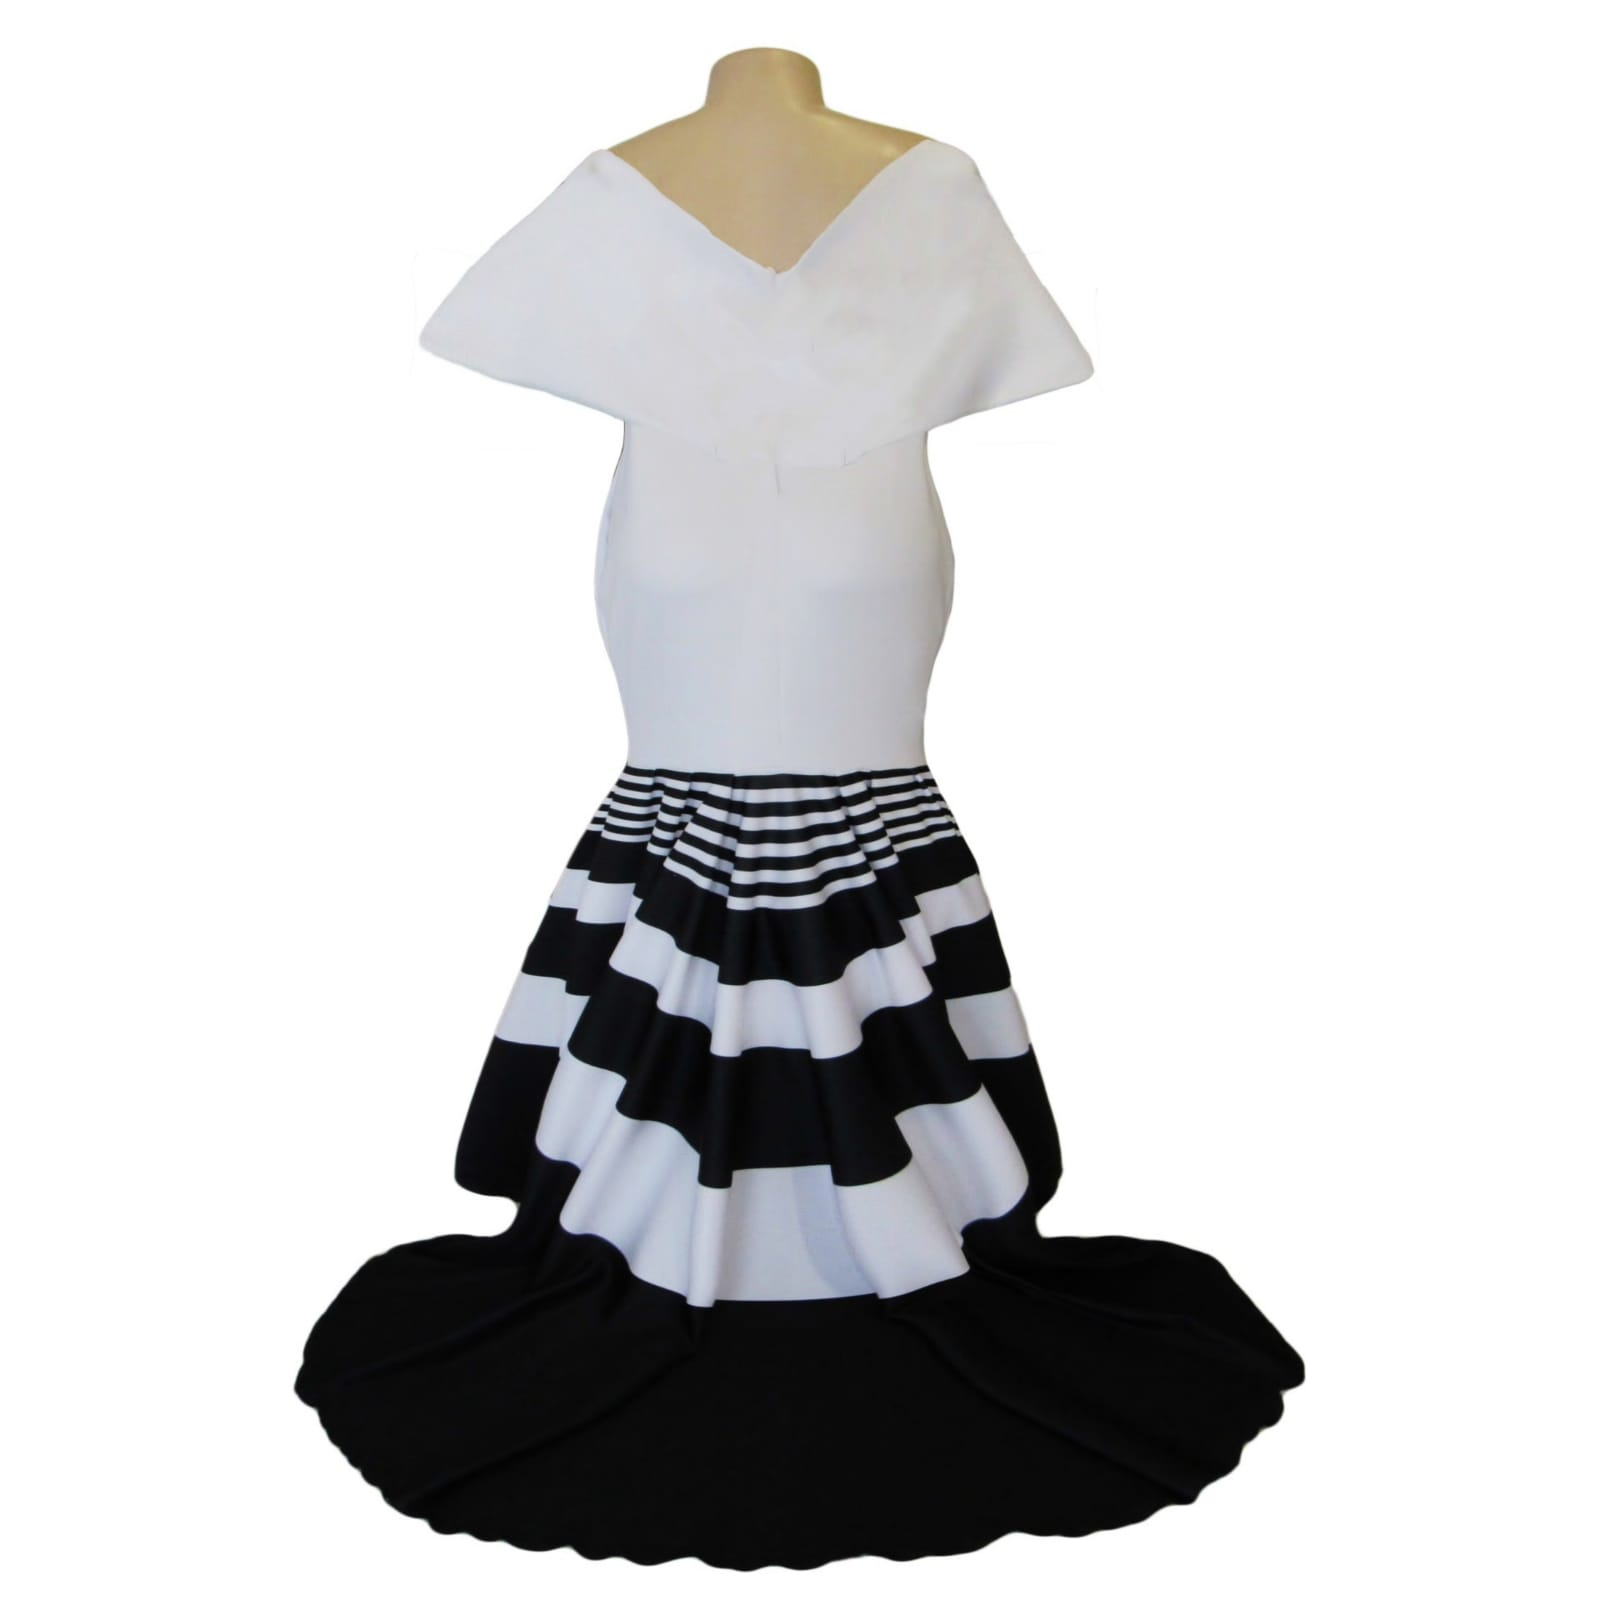 Black and white striped soft mermaid prom dress 5 black and white striped soft mermaid prom dress with a train. With a cross bust neckline with wide shoulders creating a wide short sleeve. The print is known as a traditional xhosa print in south africa.